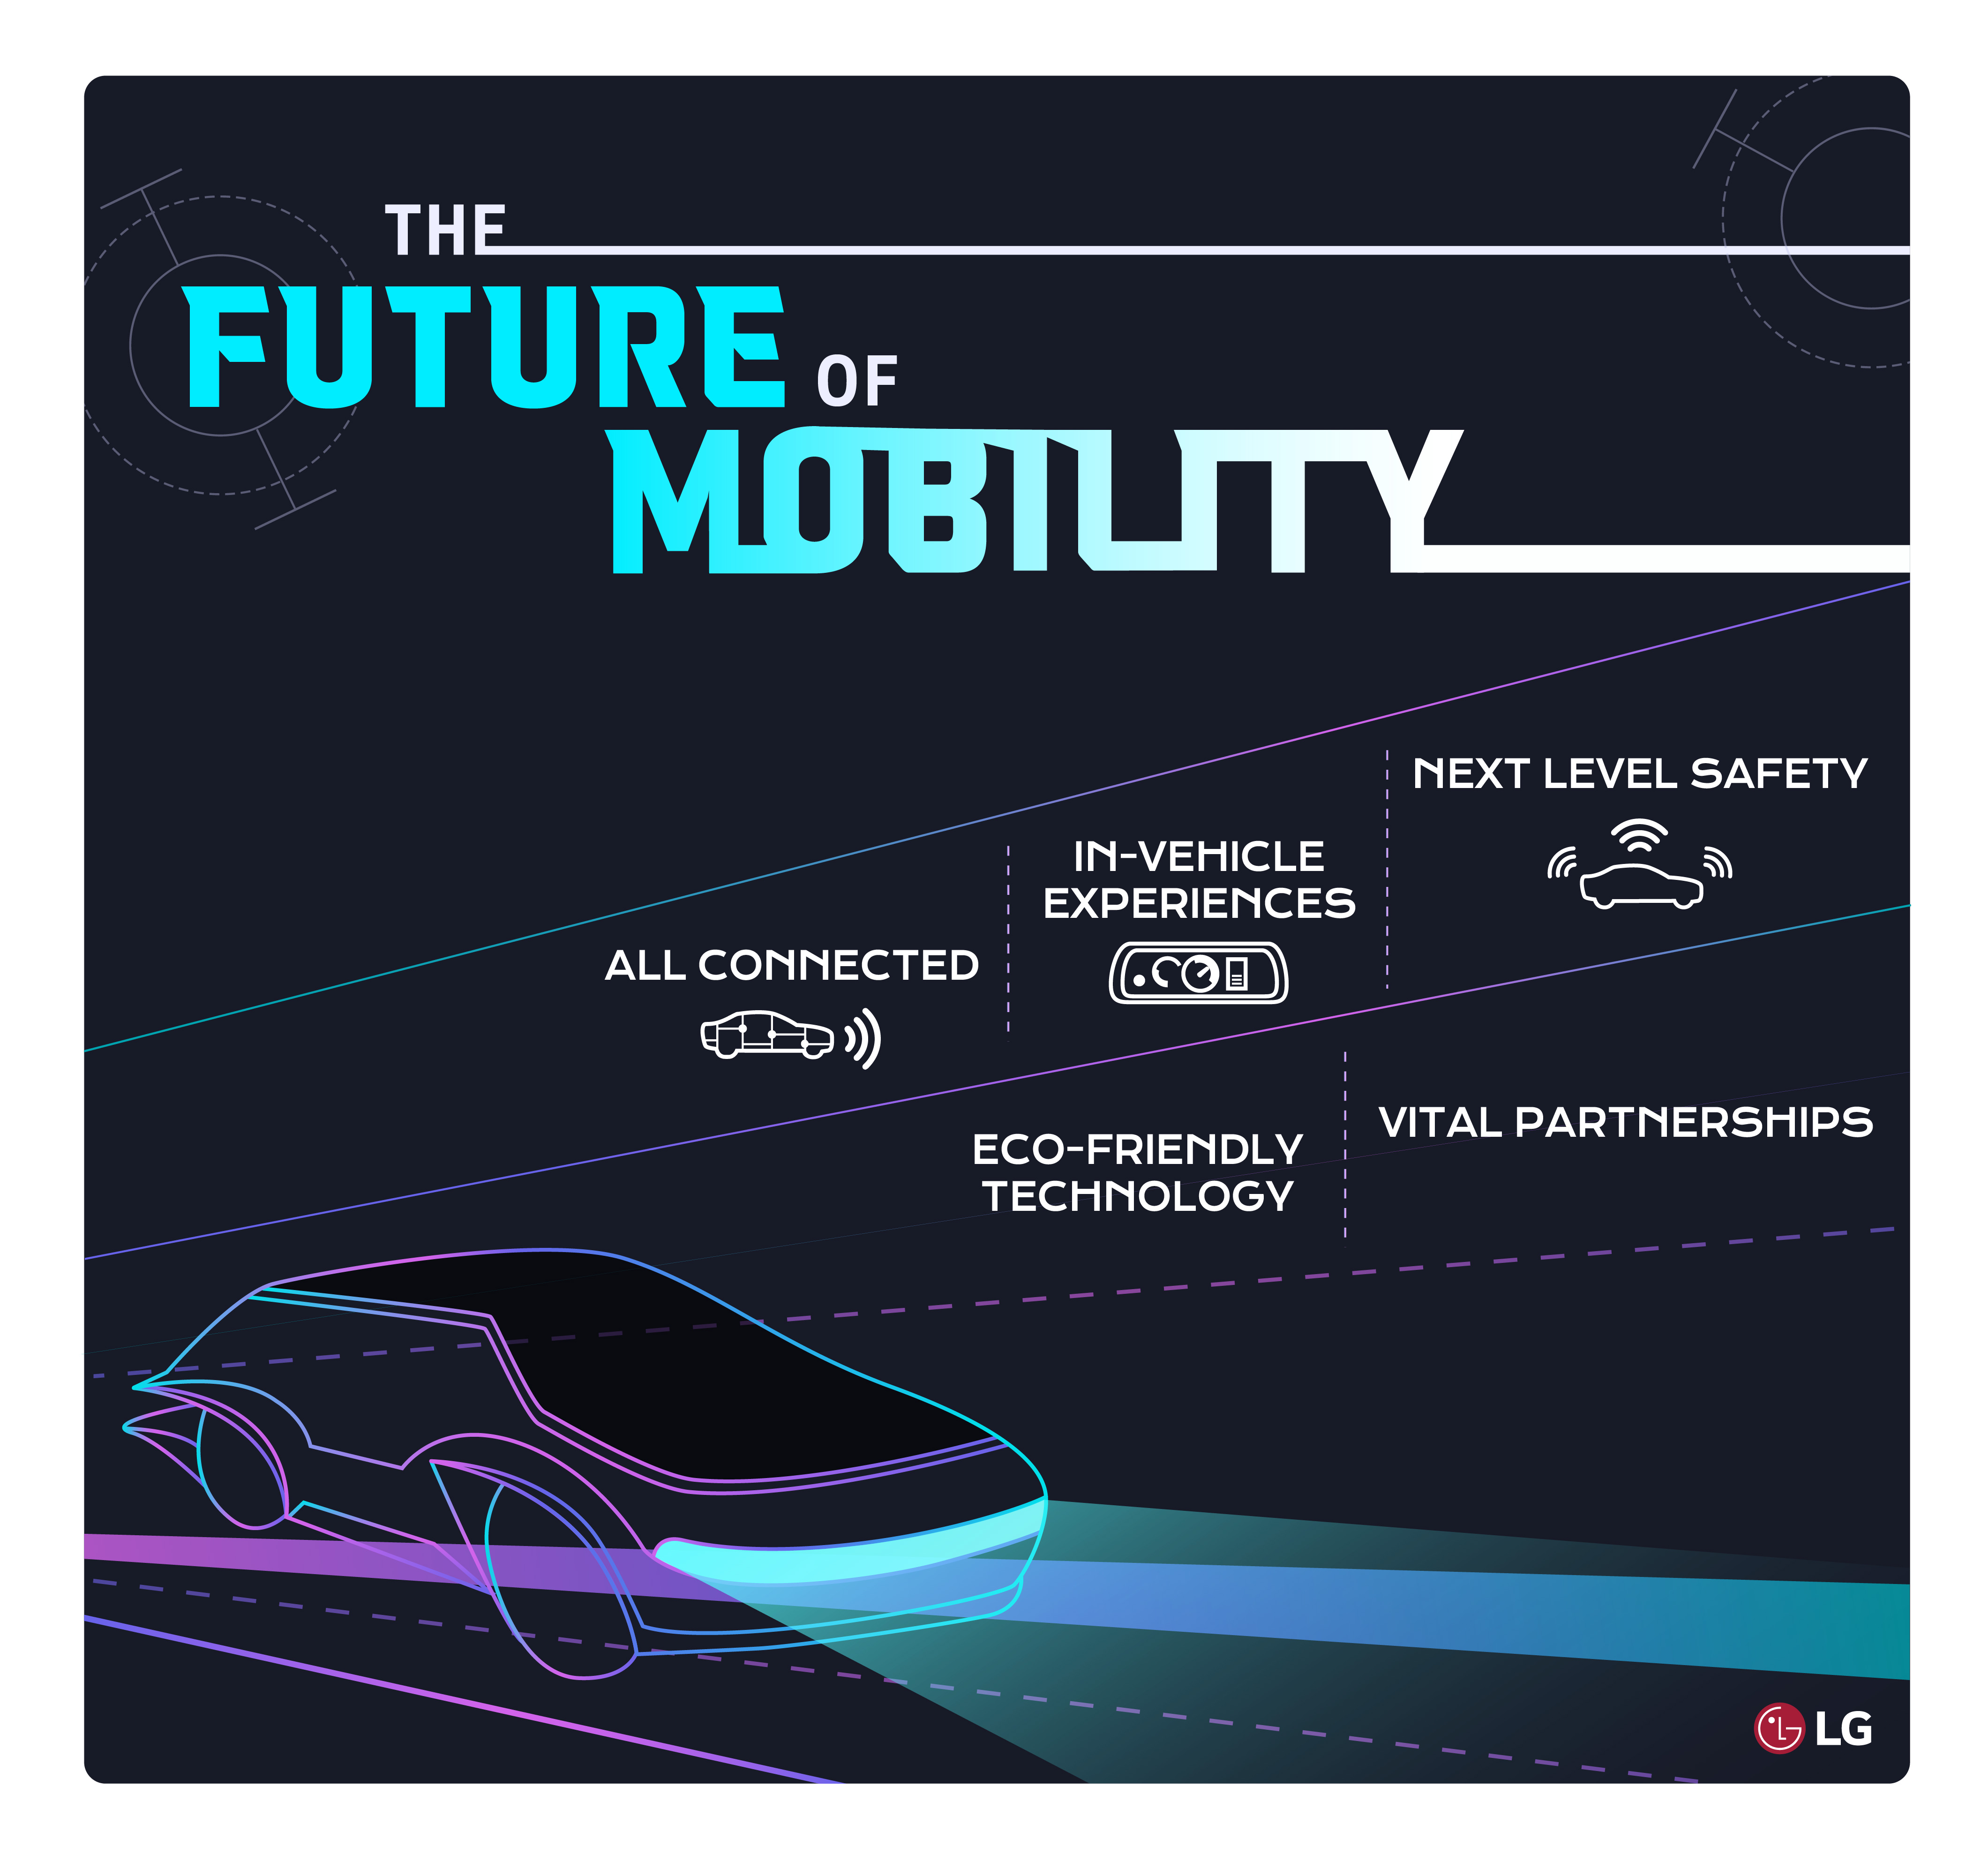 Graphic News3_Future mobility_05310200-01